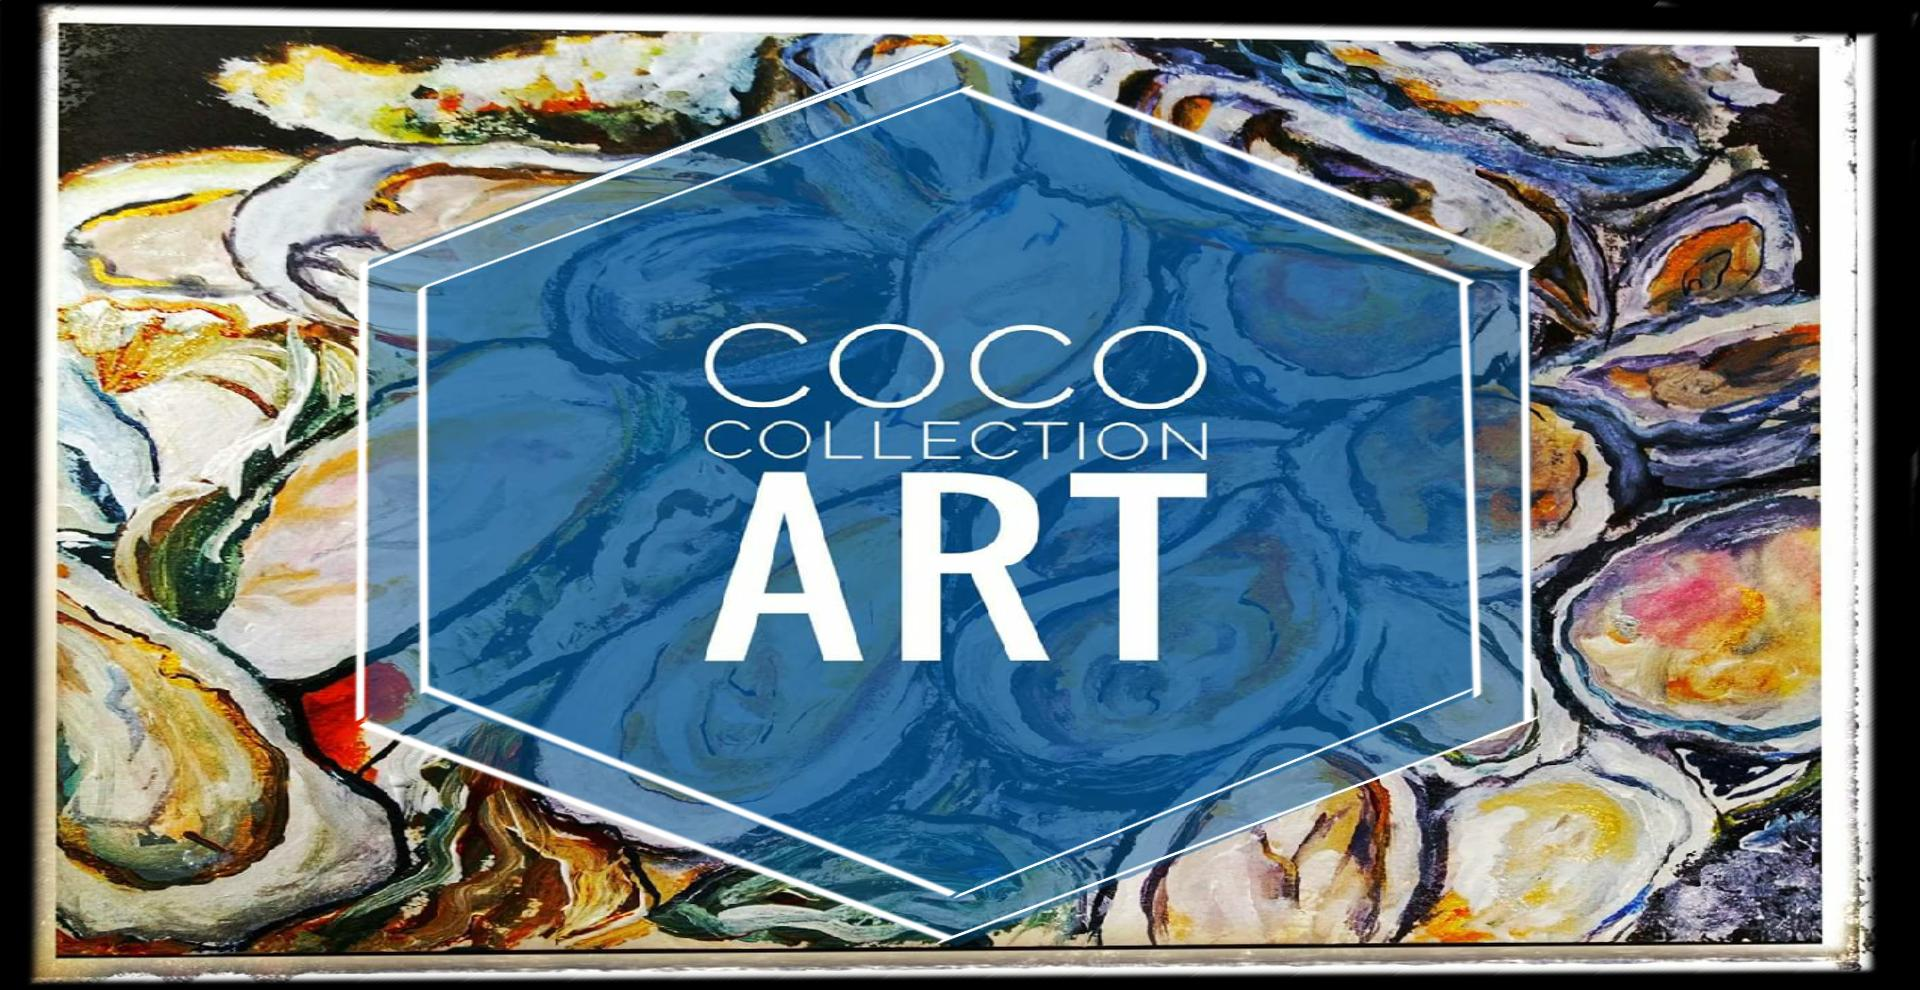 coco collection art logo.jpg